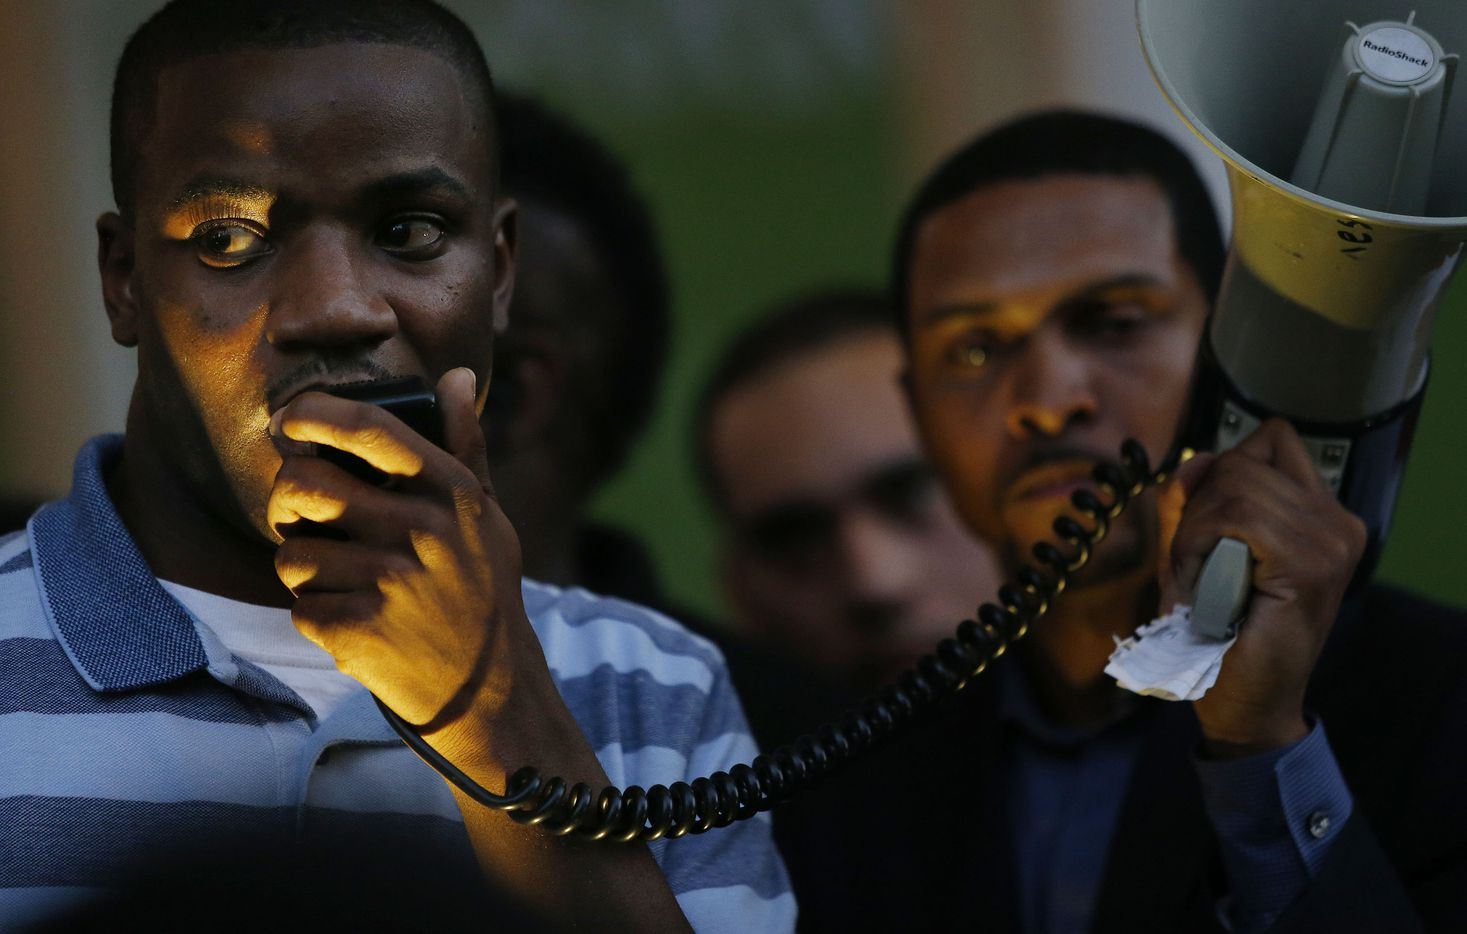 """Dominique Alexander, president and founder of Next Generation Action Network, speaks during a protest held by the Next Generation Action Network in downtown Dallas Thursday September 22, 2016. The protest, which started at the Main Street Garden Park and is called """"Enough is Enough,"""" is in reaction to recent shooting by police in Tulsa and Charlotte. (Andy Jacobsohn/The Dallas Morning News)"""